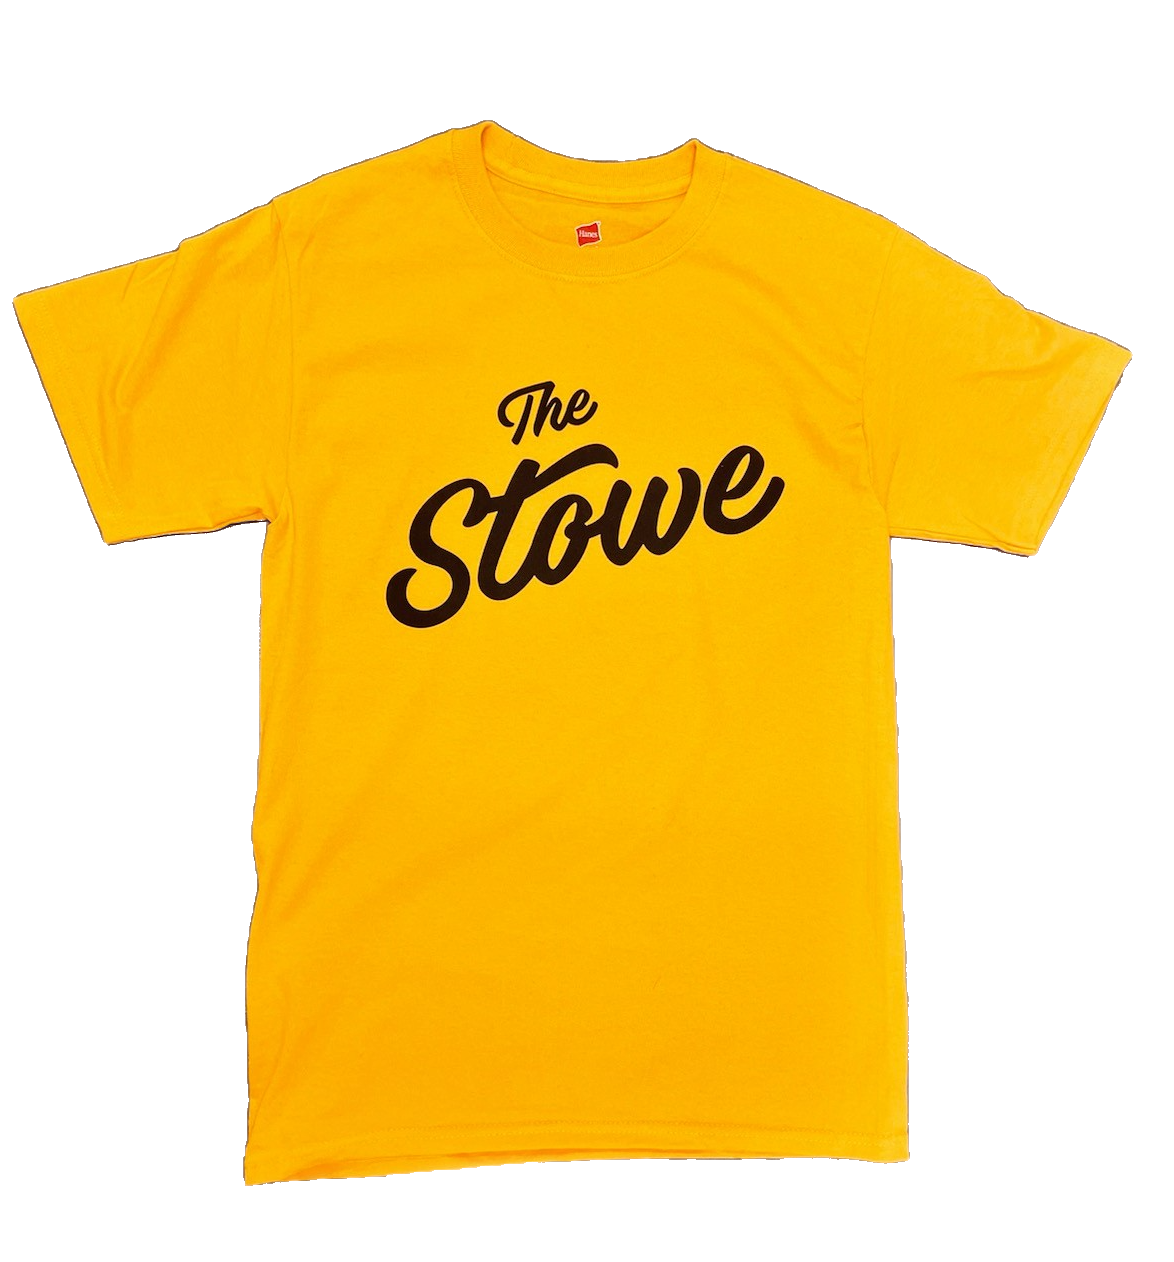 The Stowe T-shirt